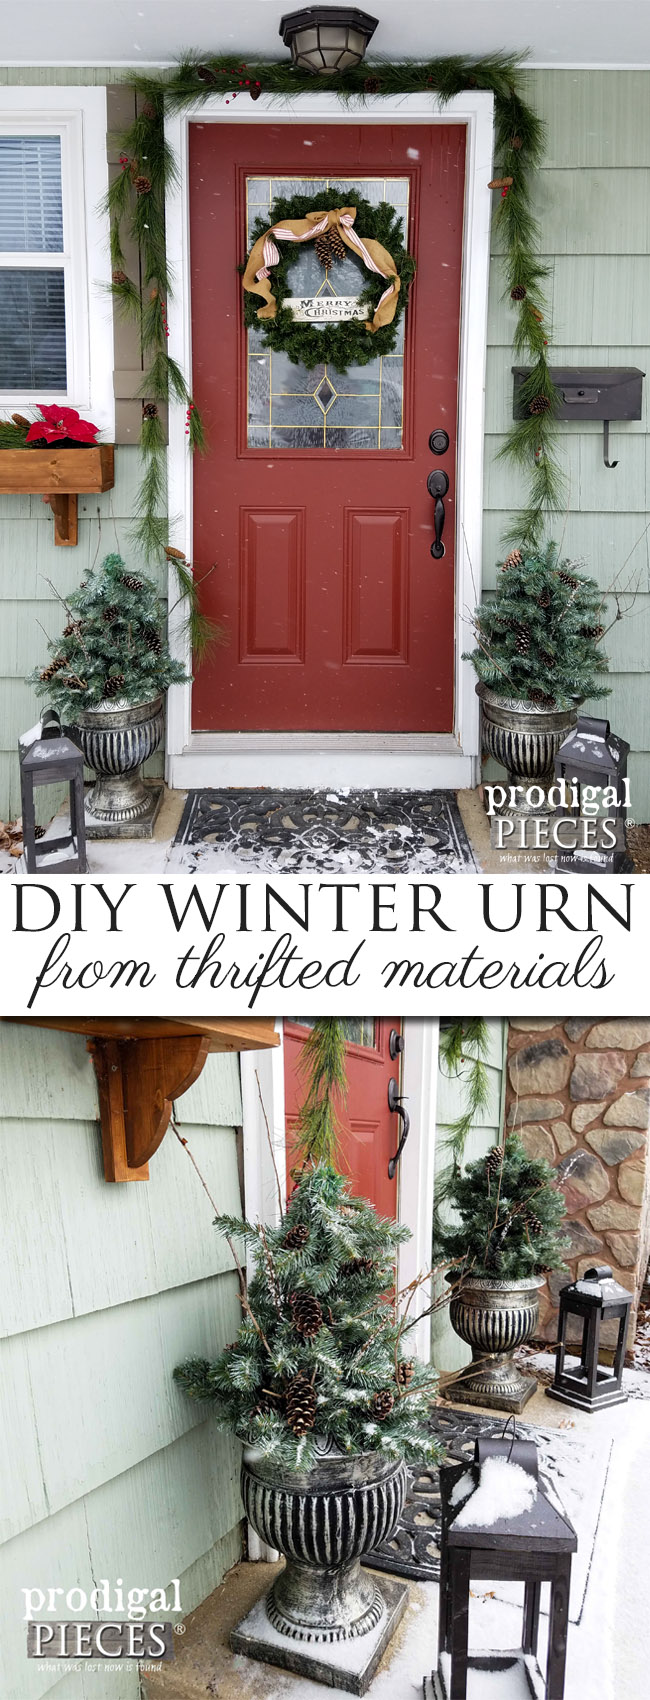 Create these Winter Urns from Thrifted and Repurposed Materials. Budget-friendly Christmas Decor by Prodigal Pieces | prodigalpieces.com